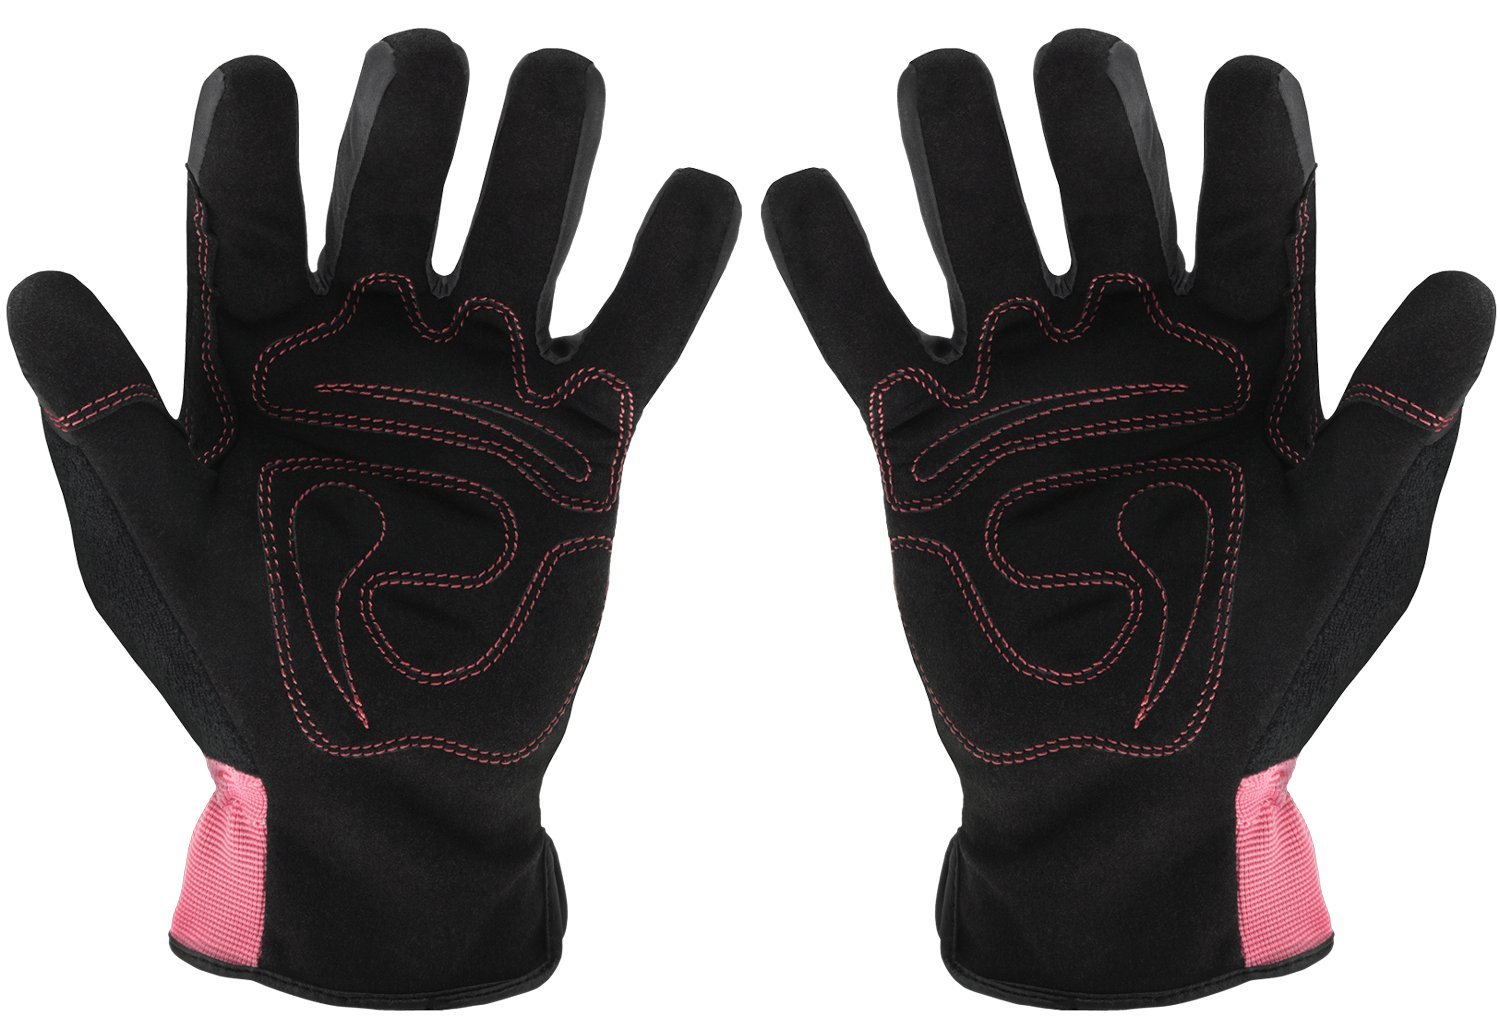 Ironclad Tuff Chix Women's Work Gloves TCX-22-S, Small by Ironclad (Image #3)